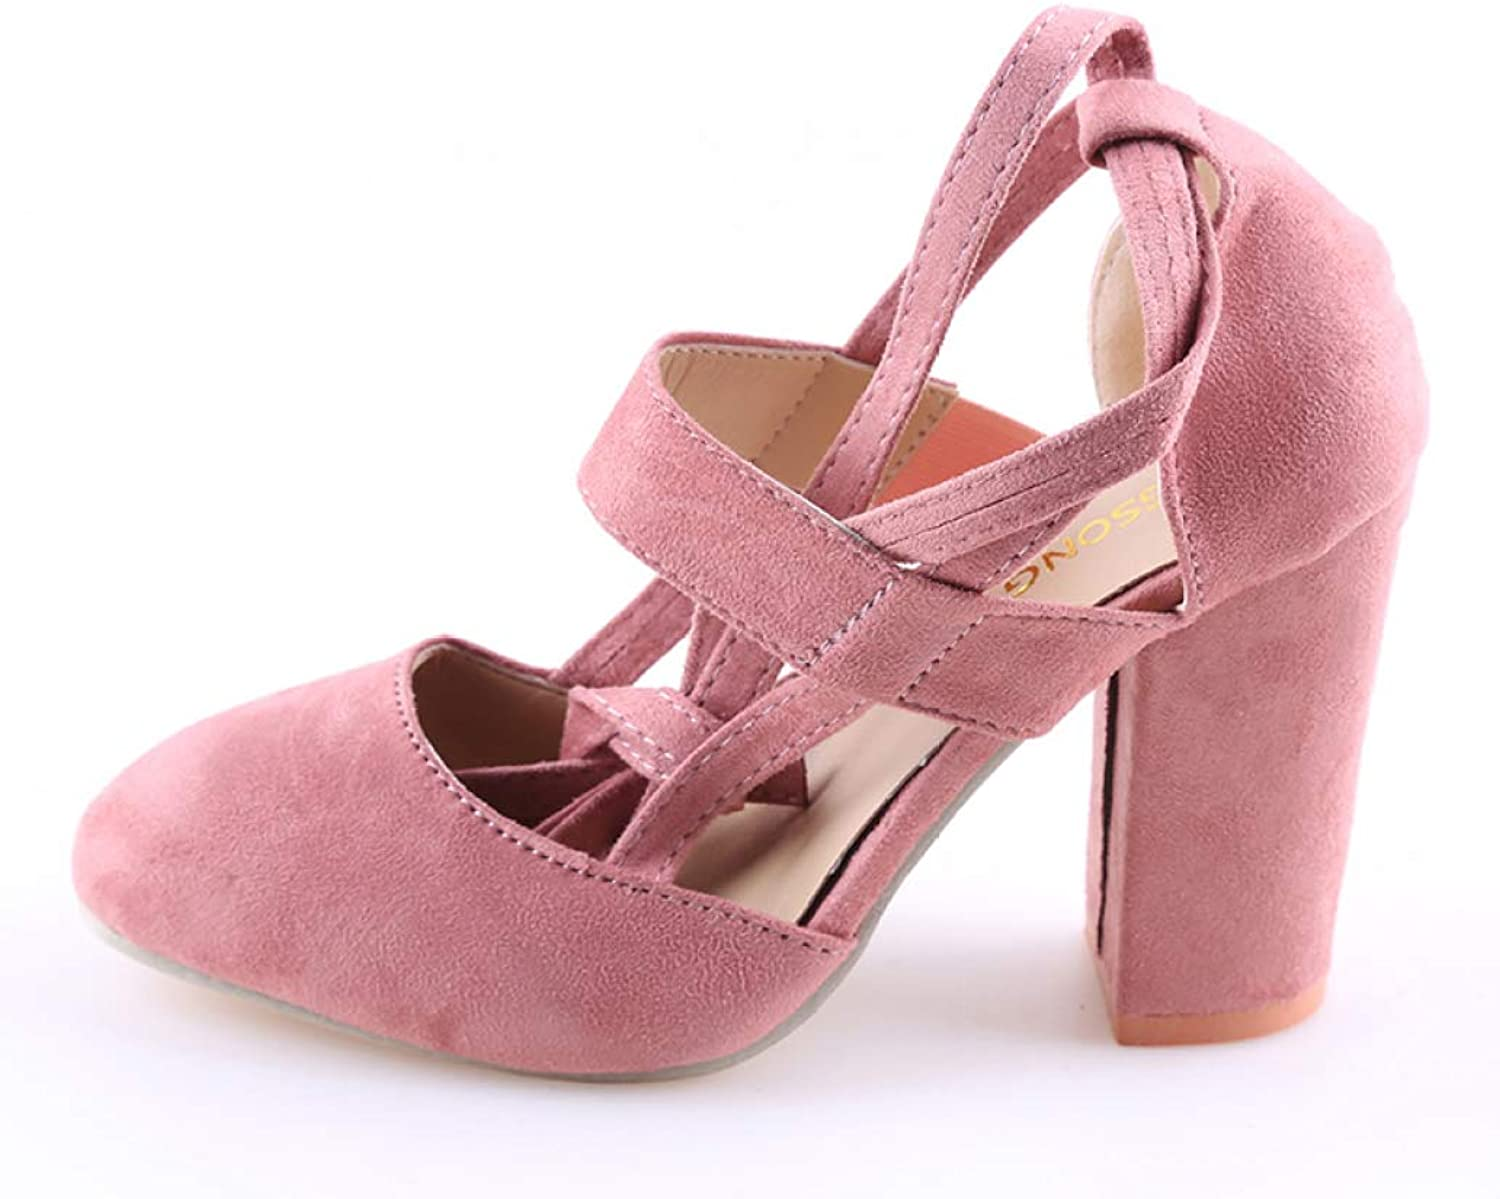 MEIZOKEN Women's Round Toe D'Orsay Pumps Sandal Fashion Cutout Lace Up High Heel Chunky Sandals